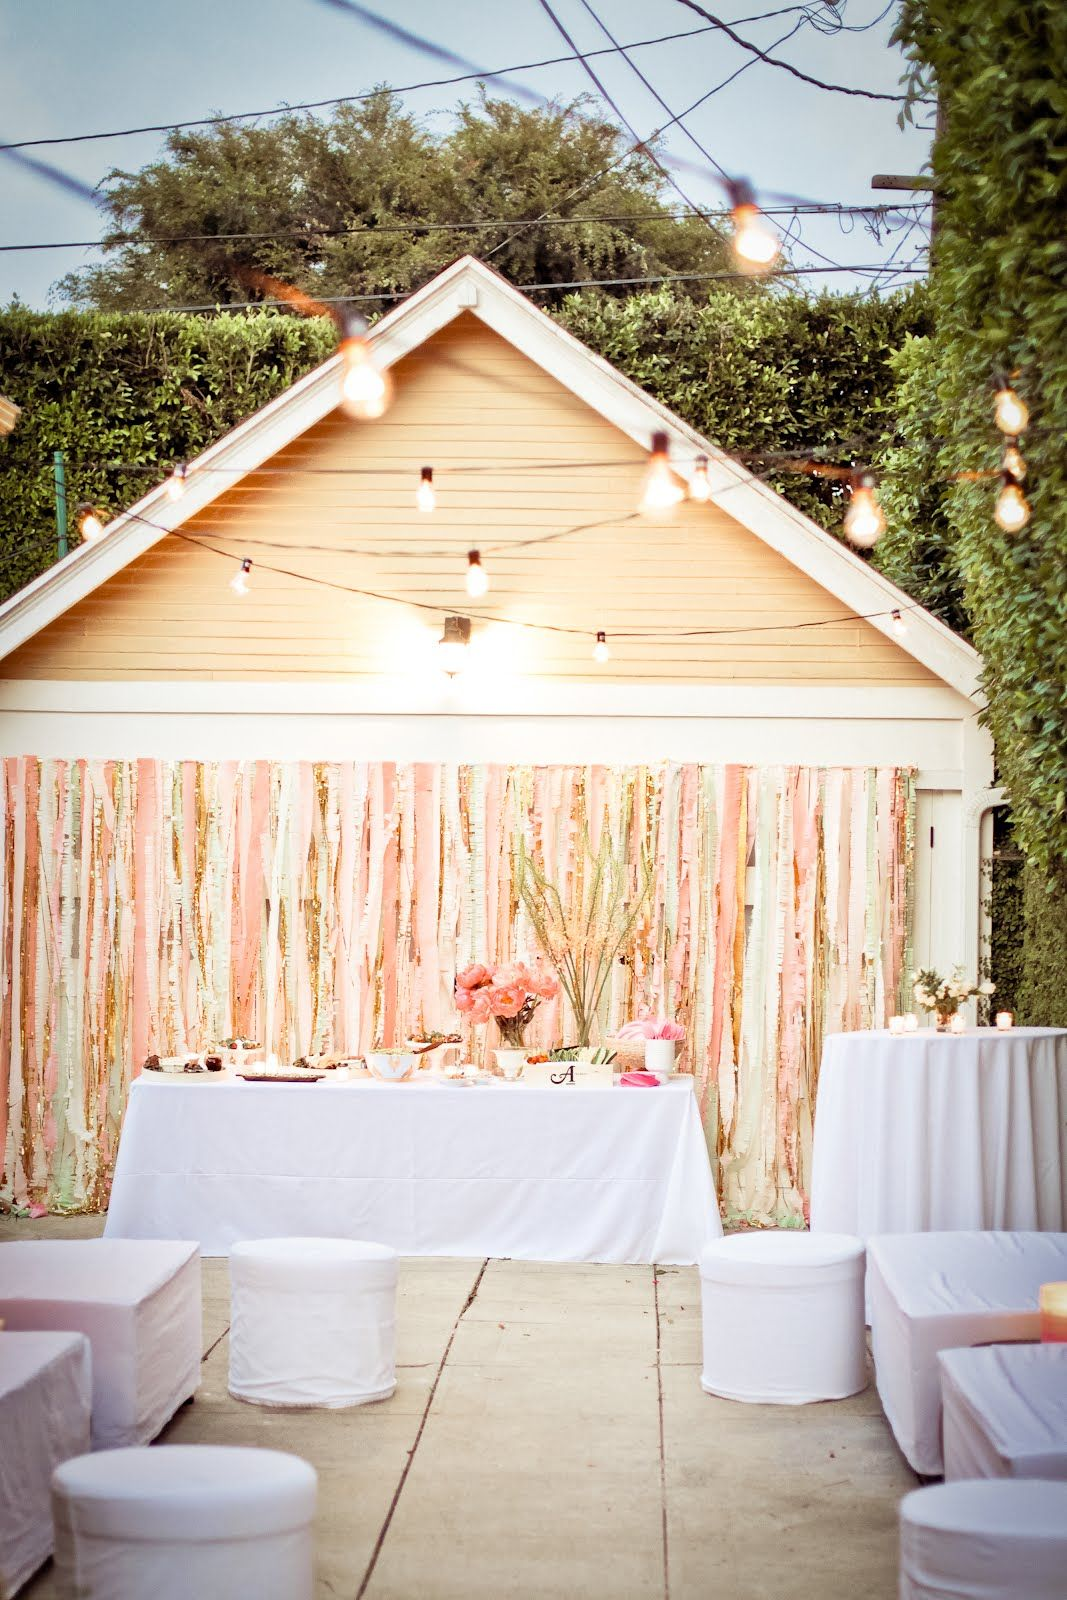 Fantastic Garage Party For The Home Backyard Birthday Wedding Download Free Architecture Designs Boapuretrmadebymaigaardcom